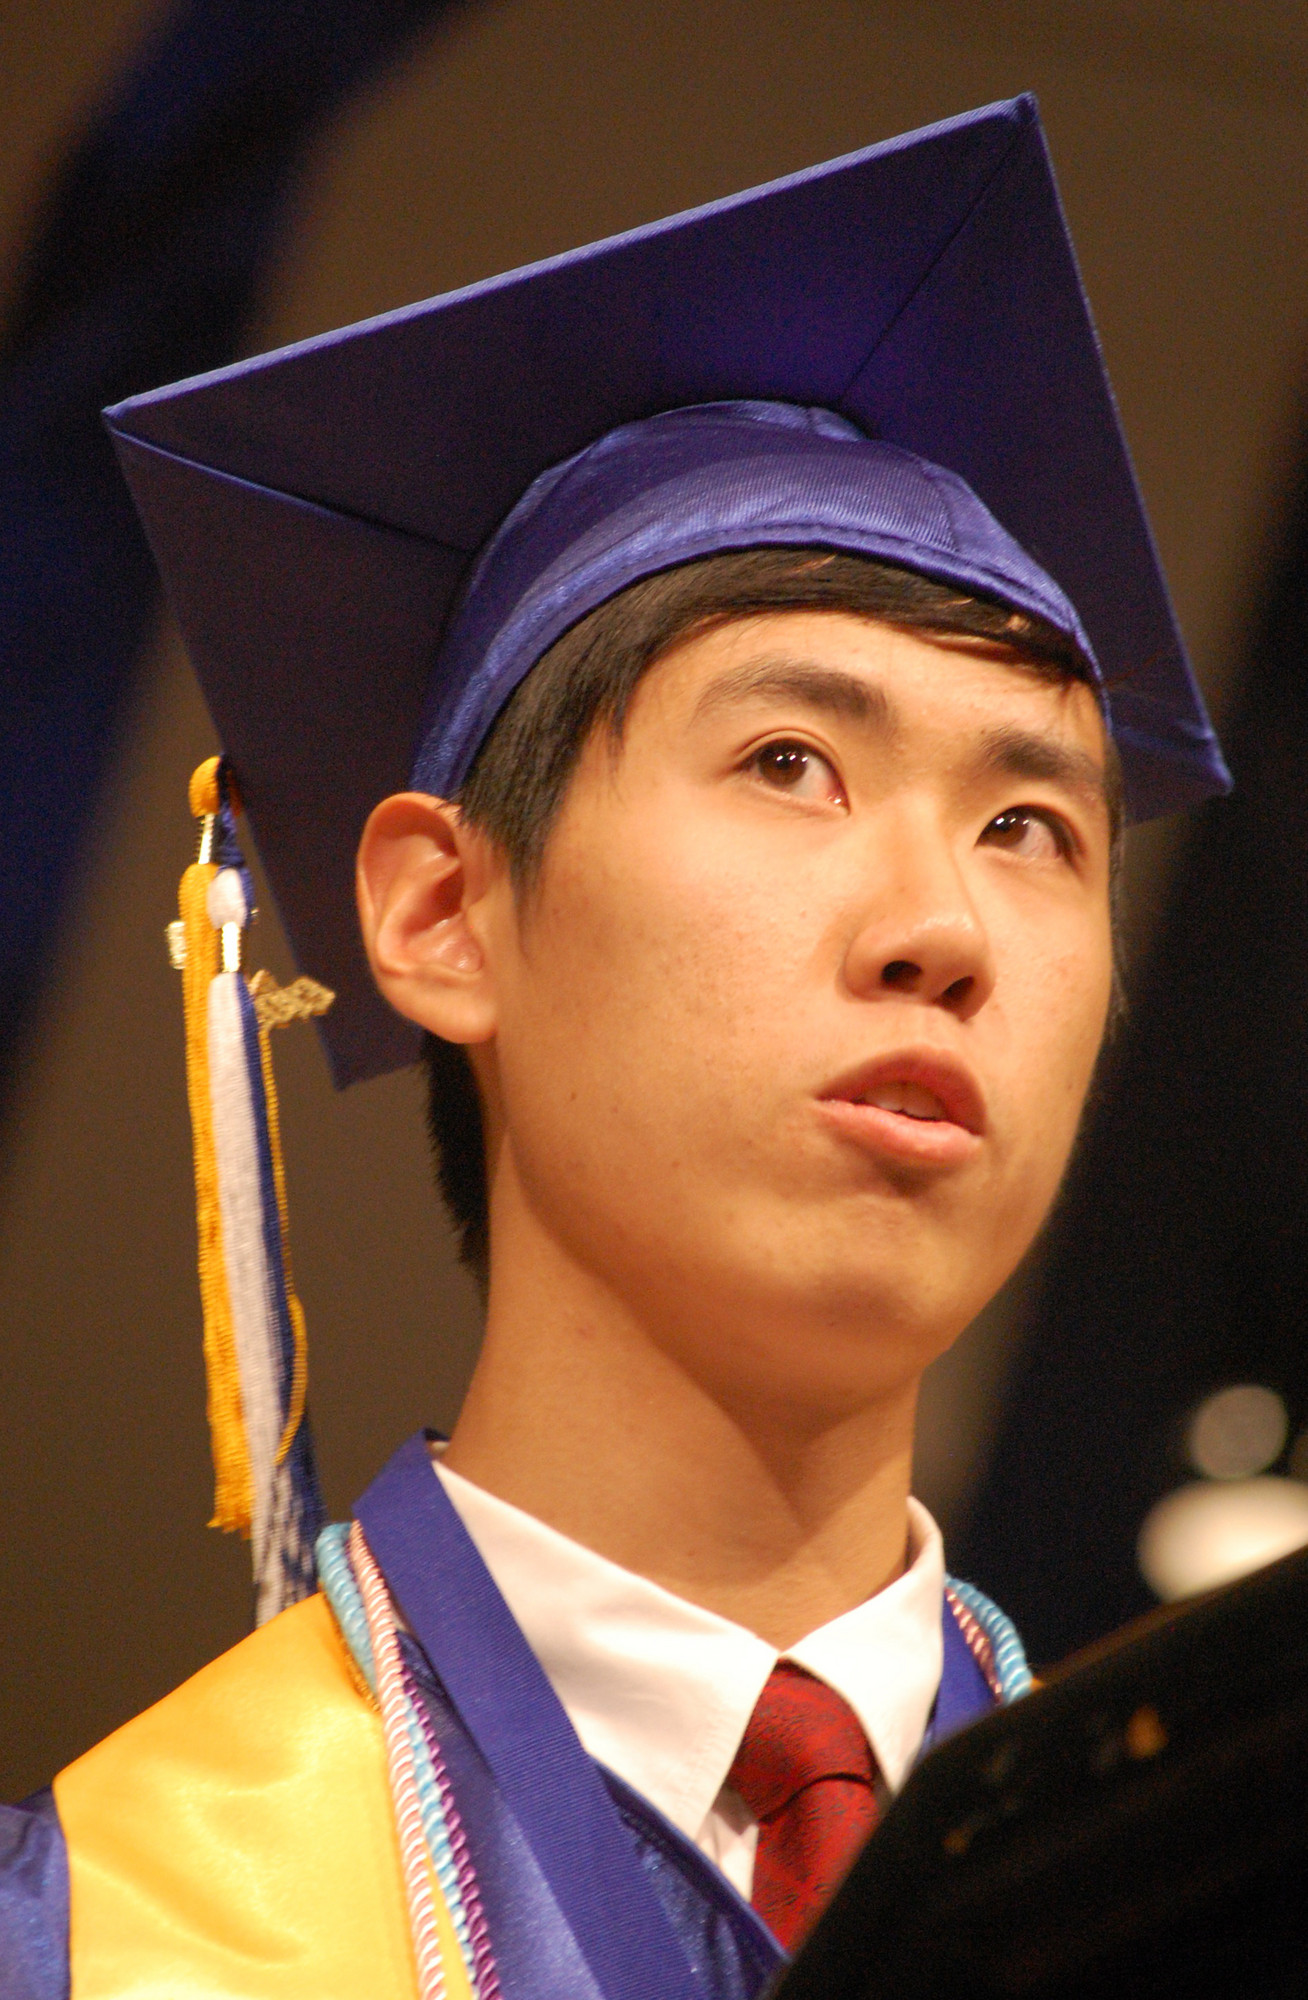 Valedictorian Chung Wei Jason Shen addressed his fellow graduates.